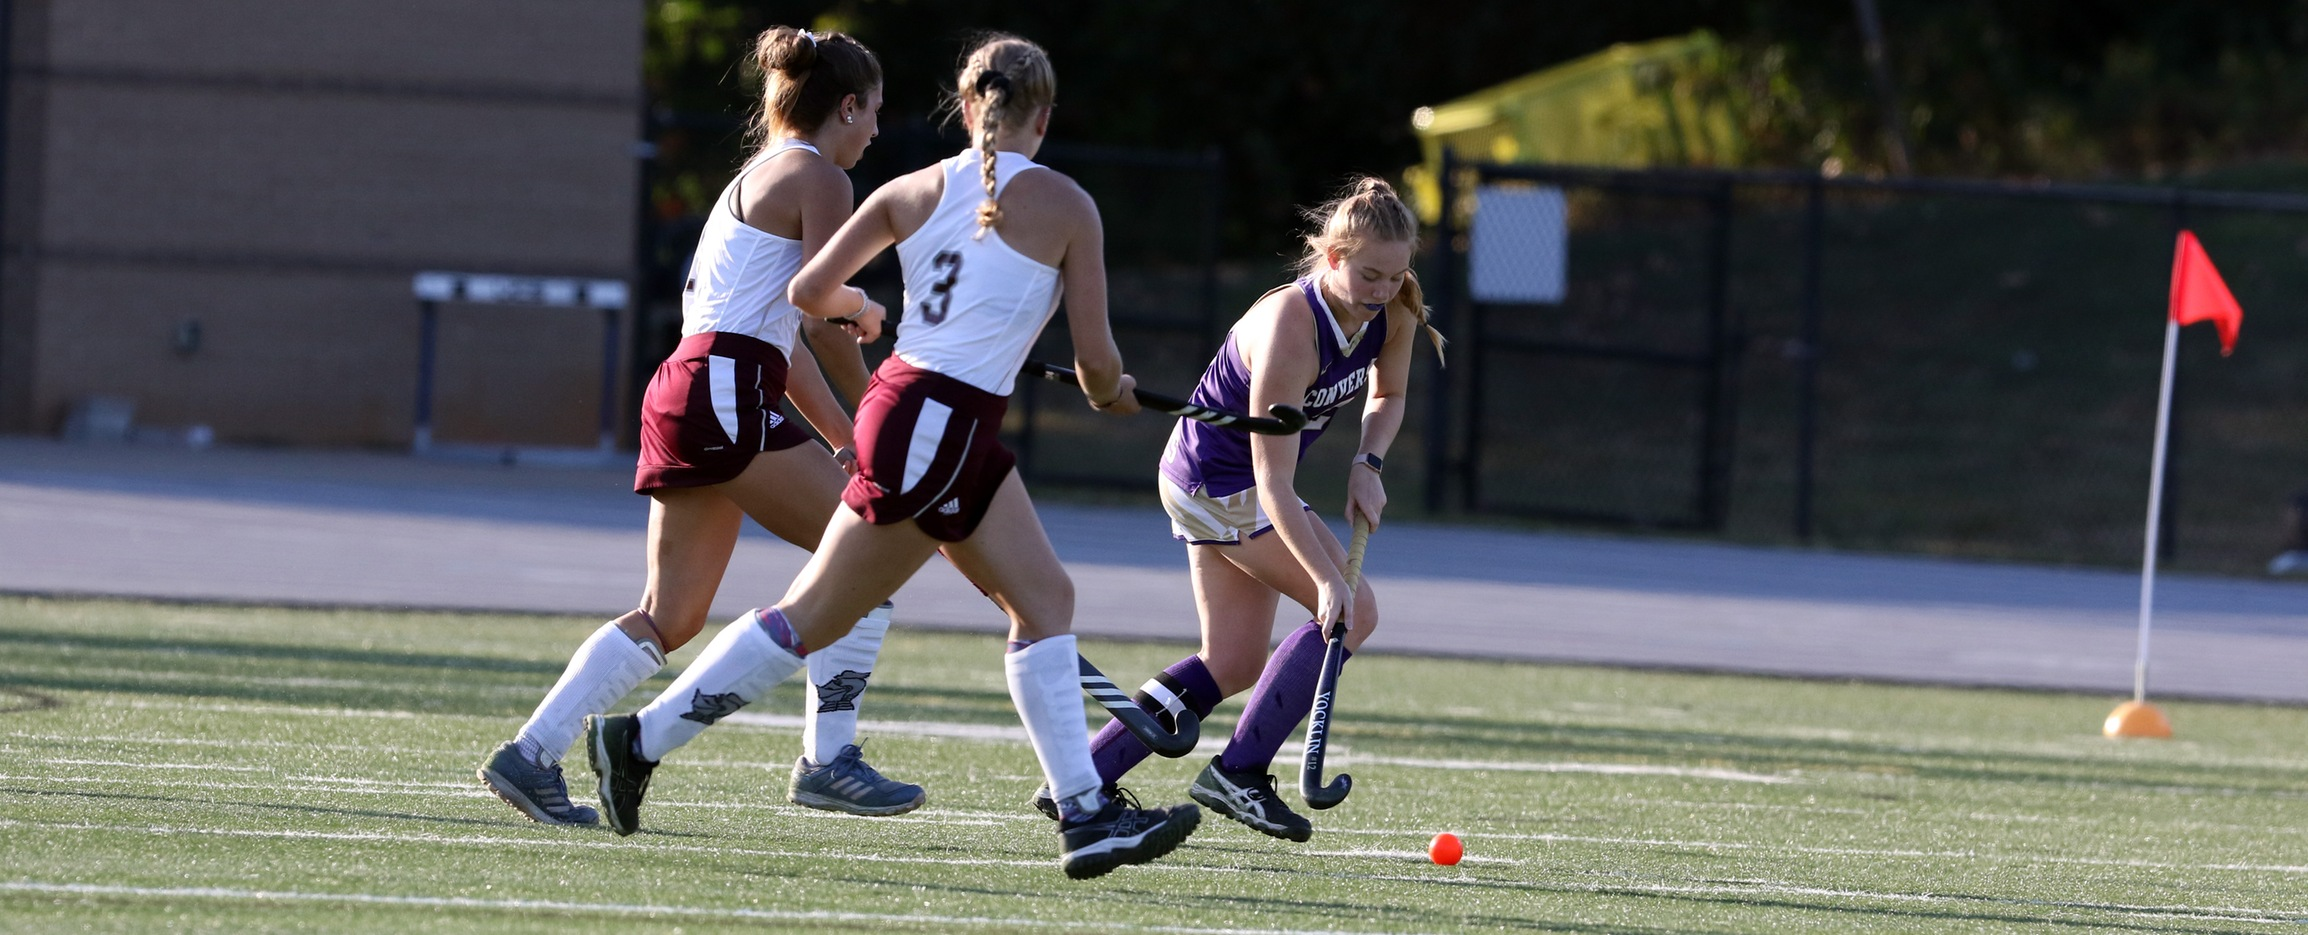 Converse Field Hockey Falls On Golden Goal In Overtime